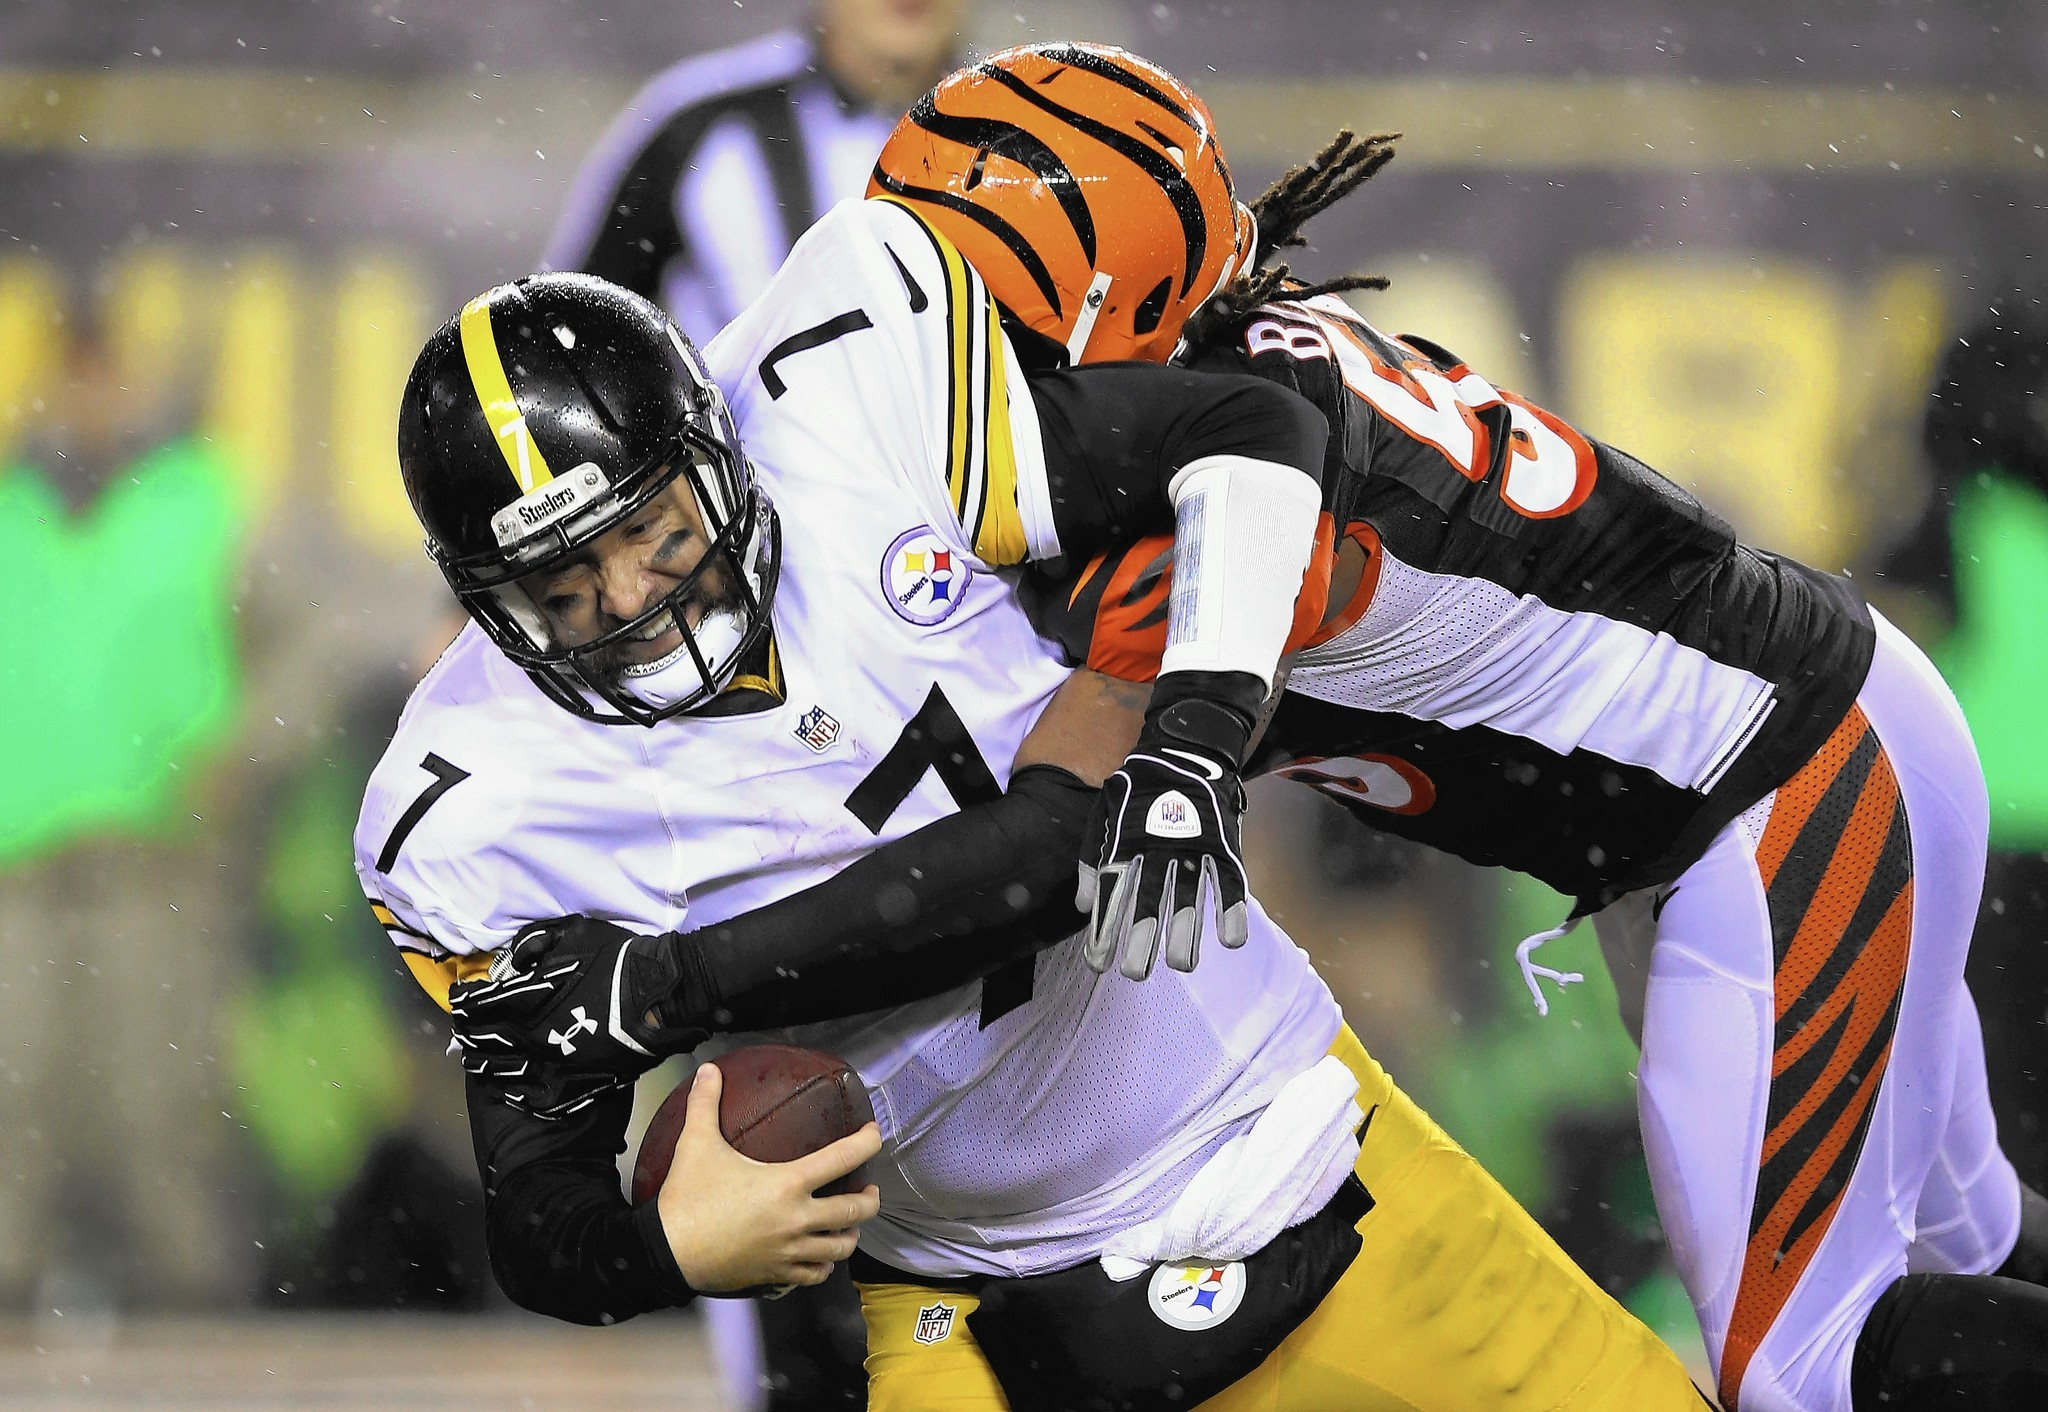 premium selection 1fff0 ed1bb Steelers narrowly escape Cincinnati with win - The Morning Call